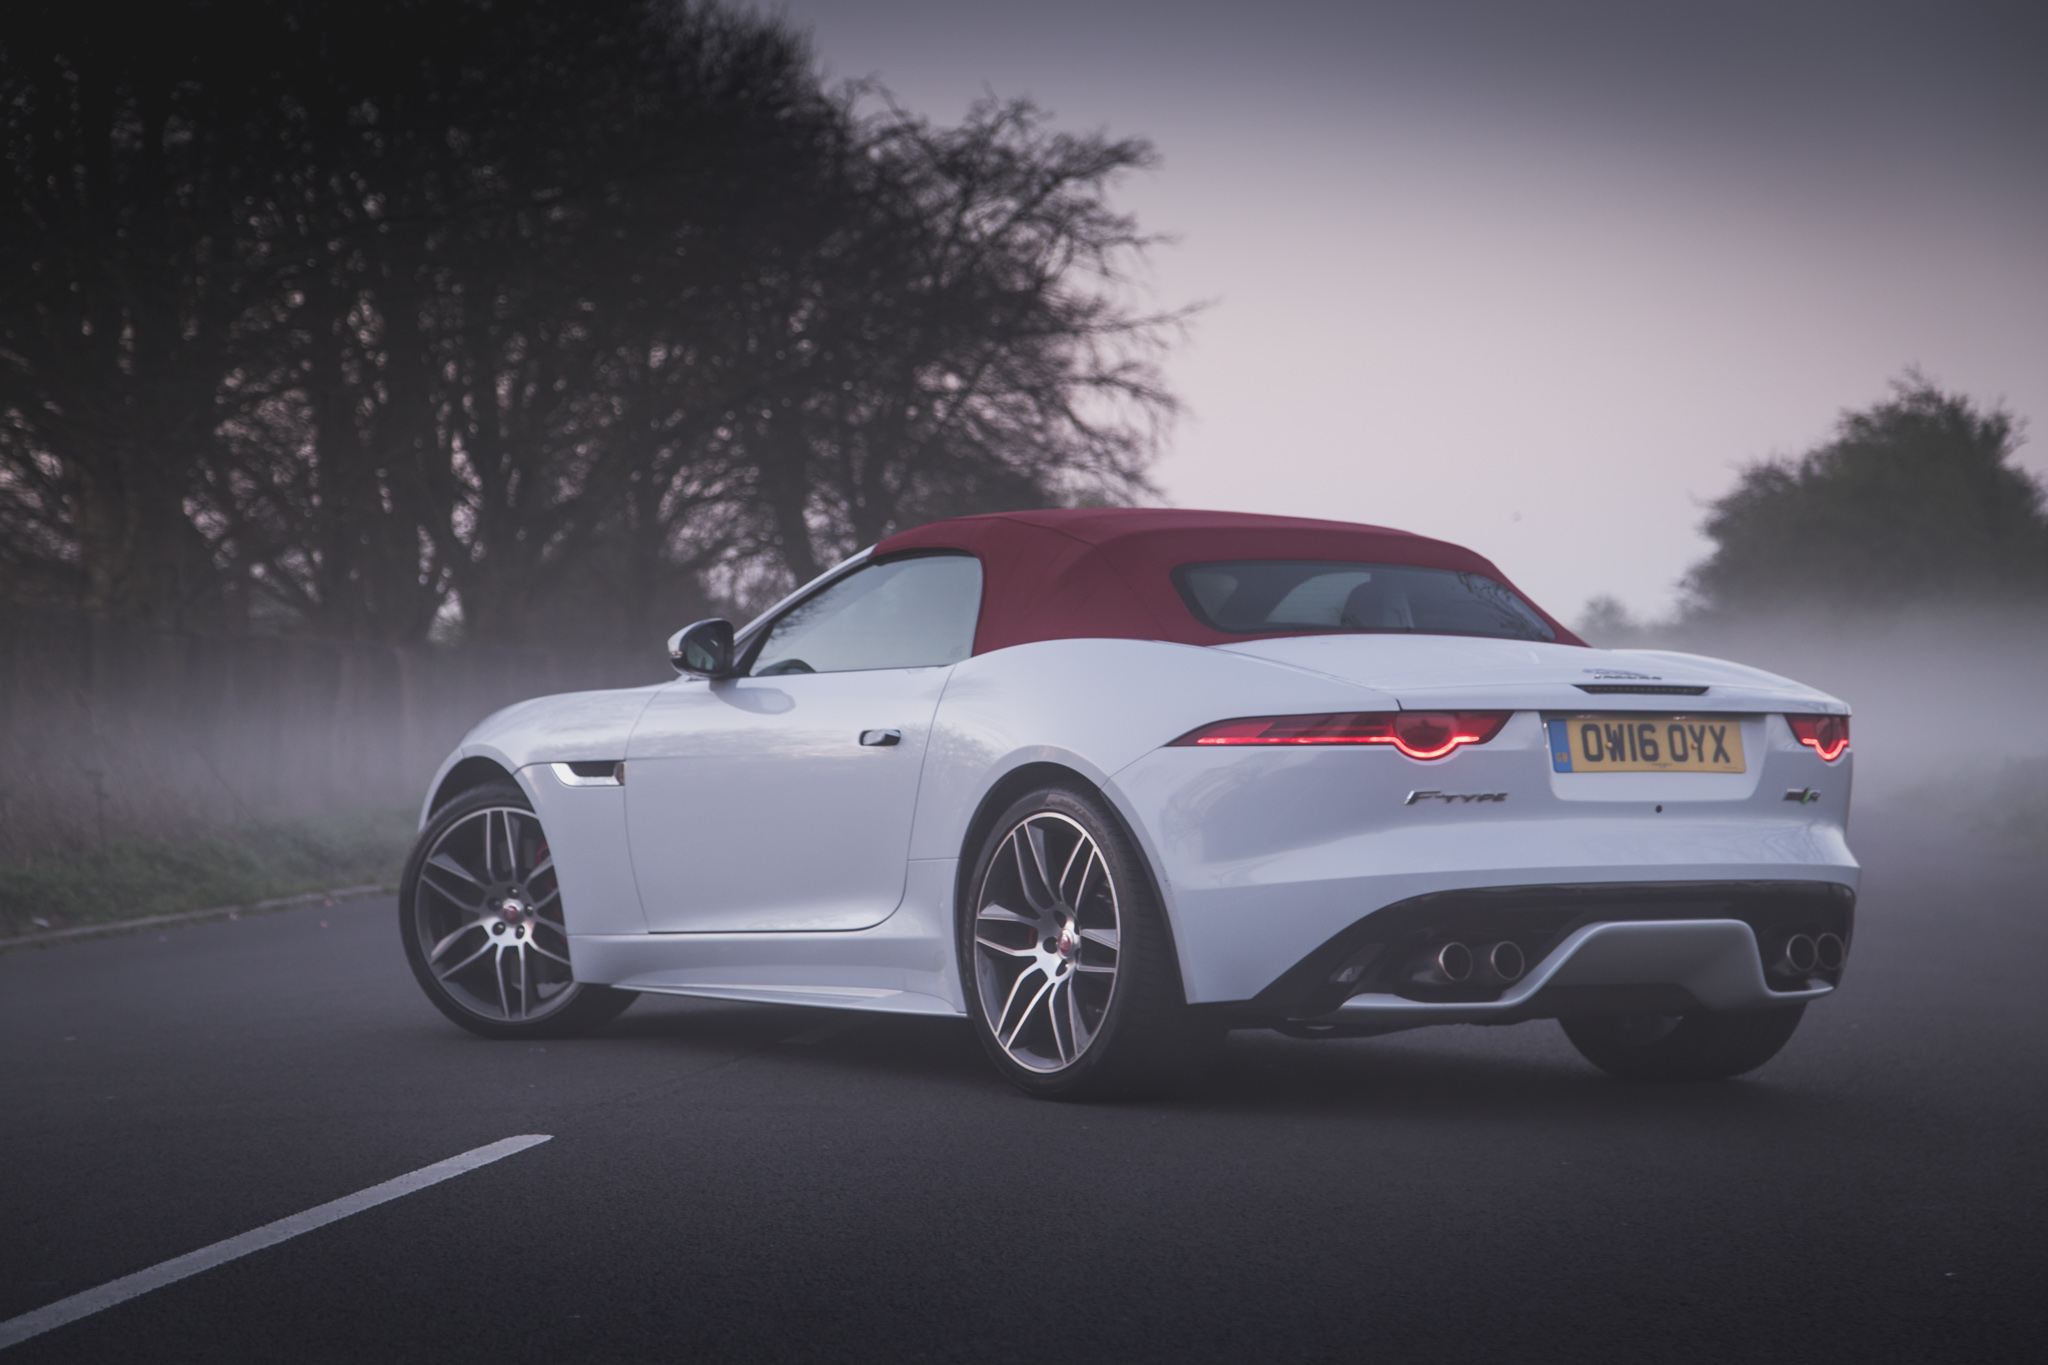 Luxury Cars 2018 >> 2017 Jaguar F-Type V8R AWD Convertible Gallery